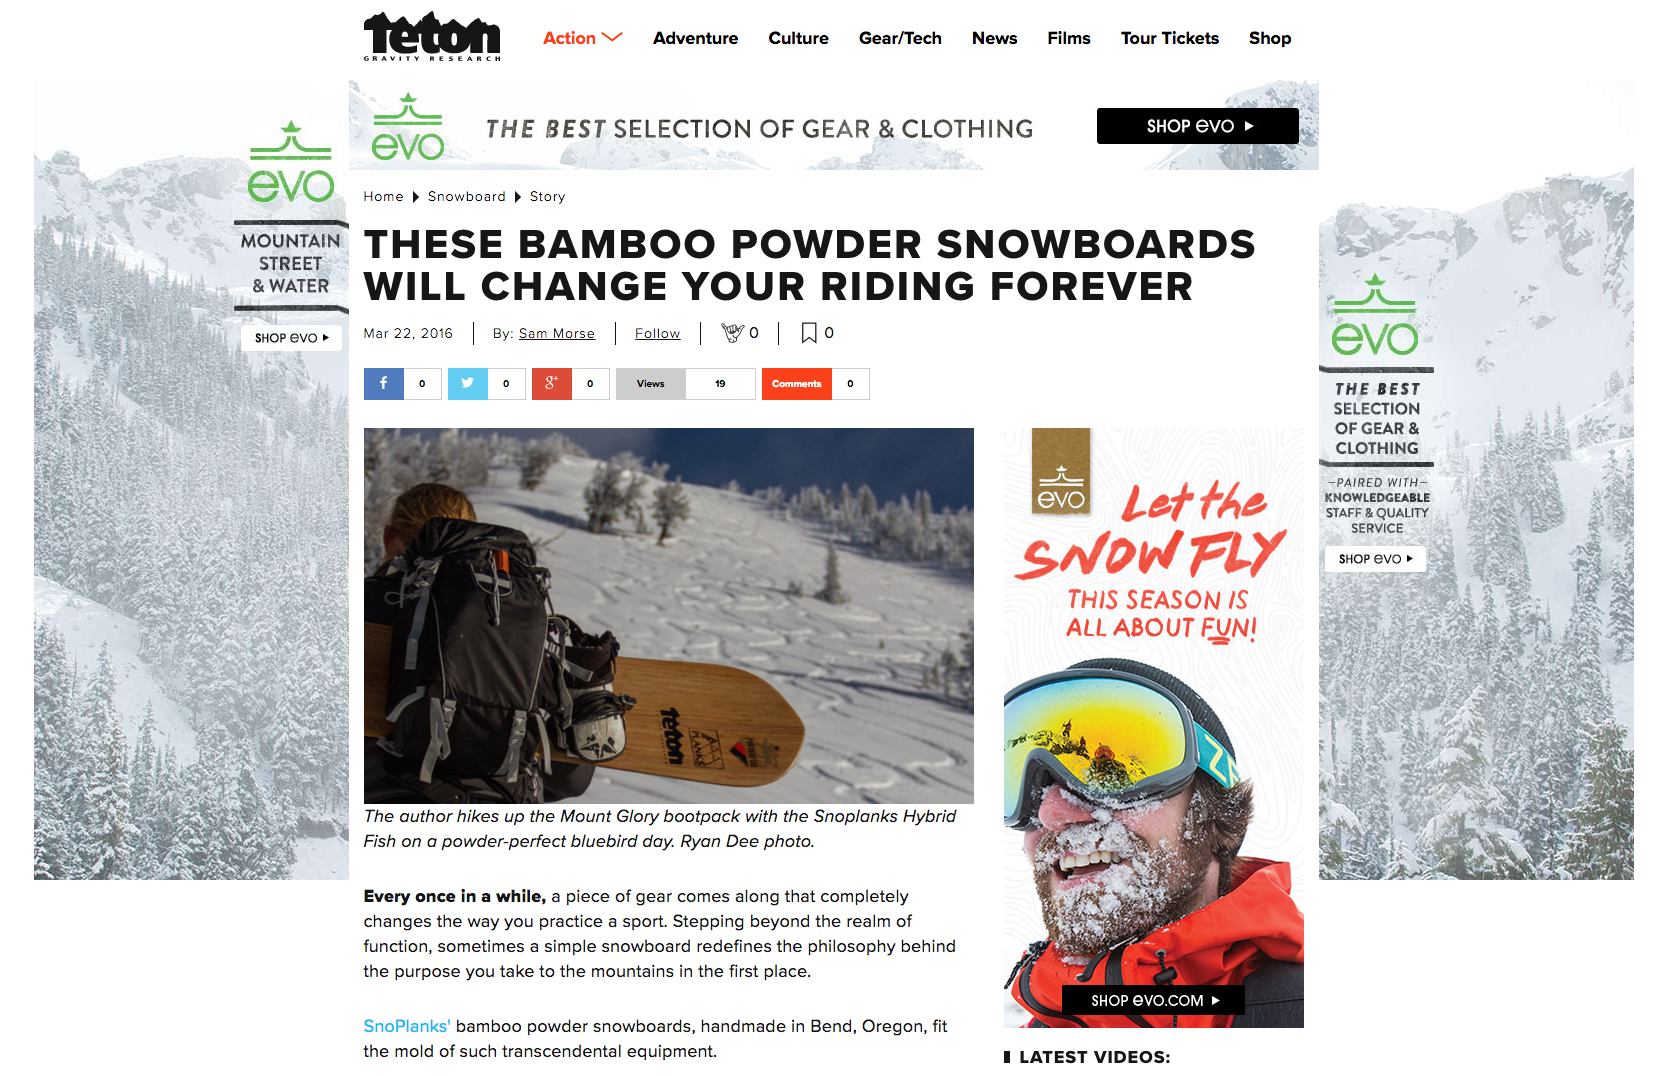 Teton Gravity Research Reviews SnoPlanks Powder Snowboards